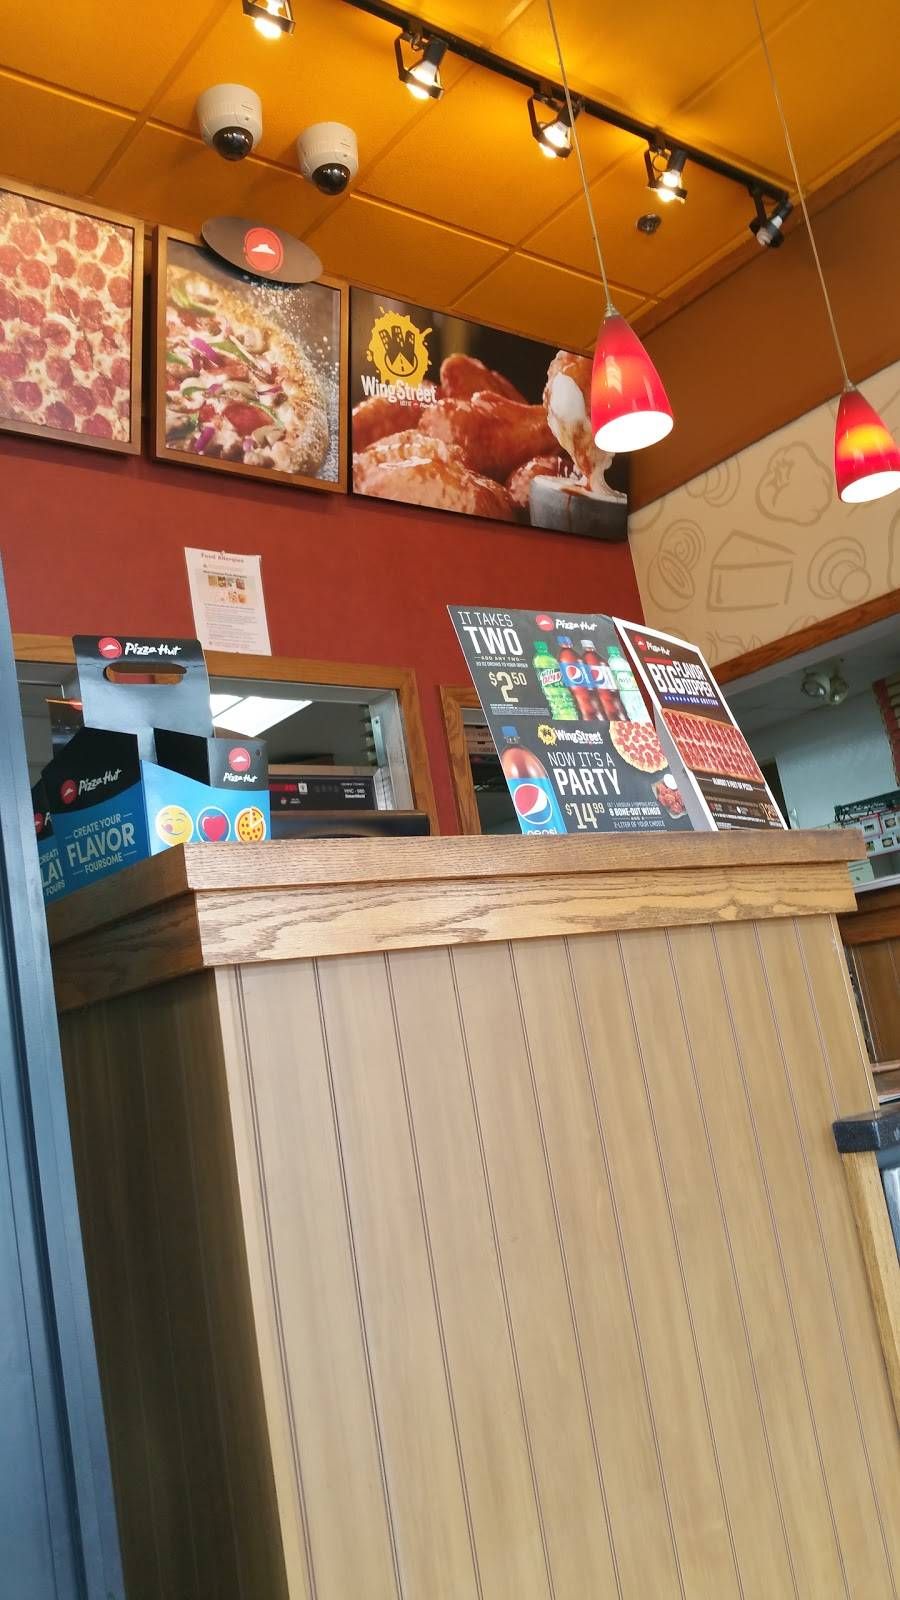 Pizza Hut | meal takeaway | 131 Church St, Lowell, MA 01850, USA | 9784549201 OR +1 978-454-9201